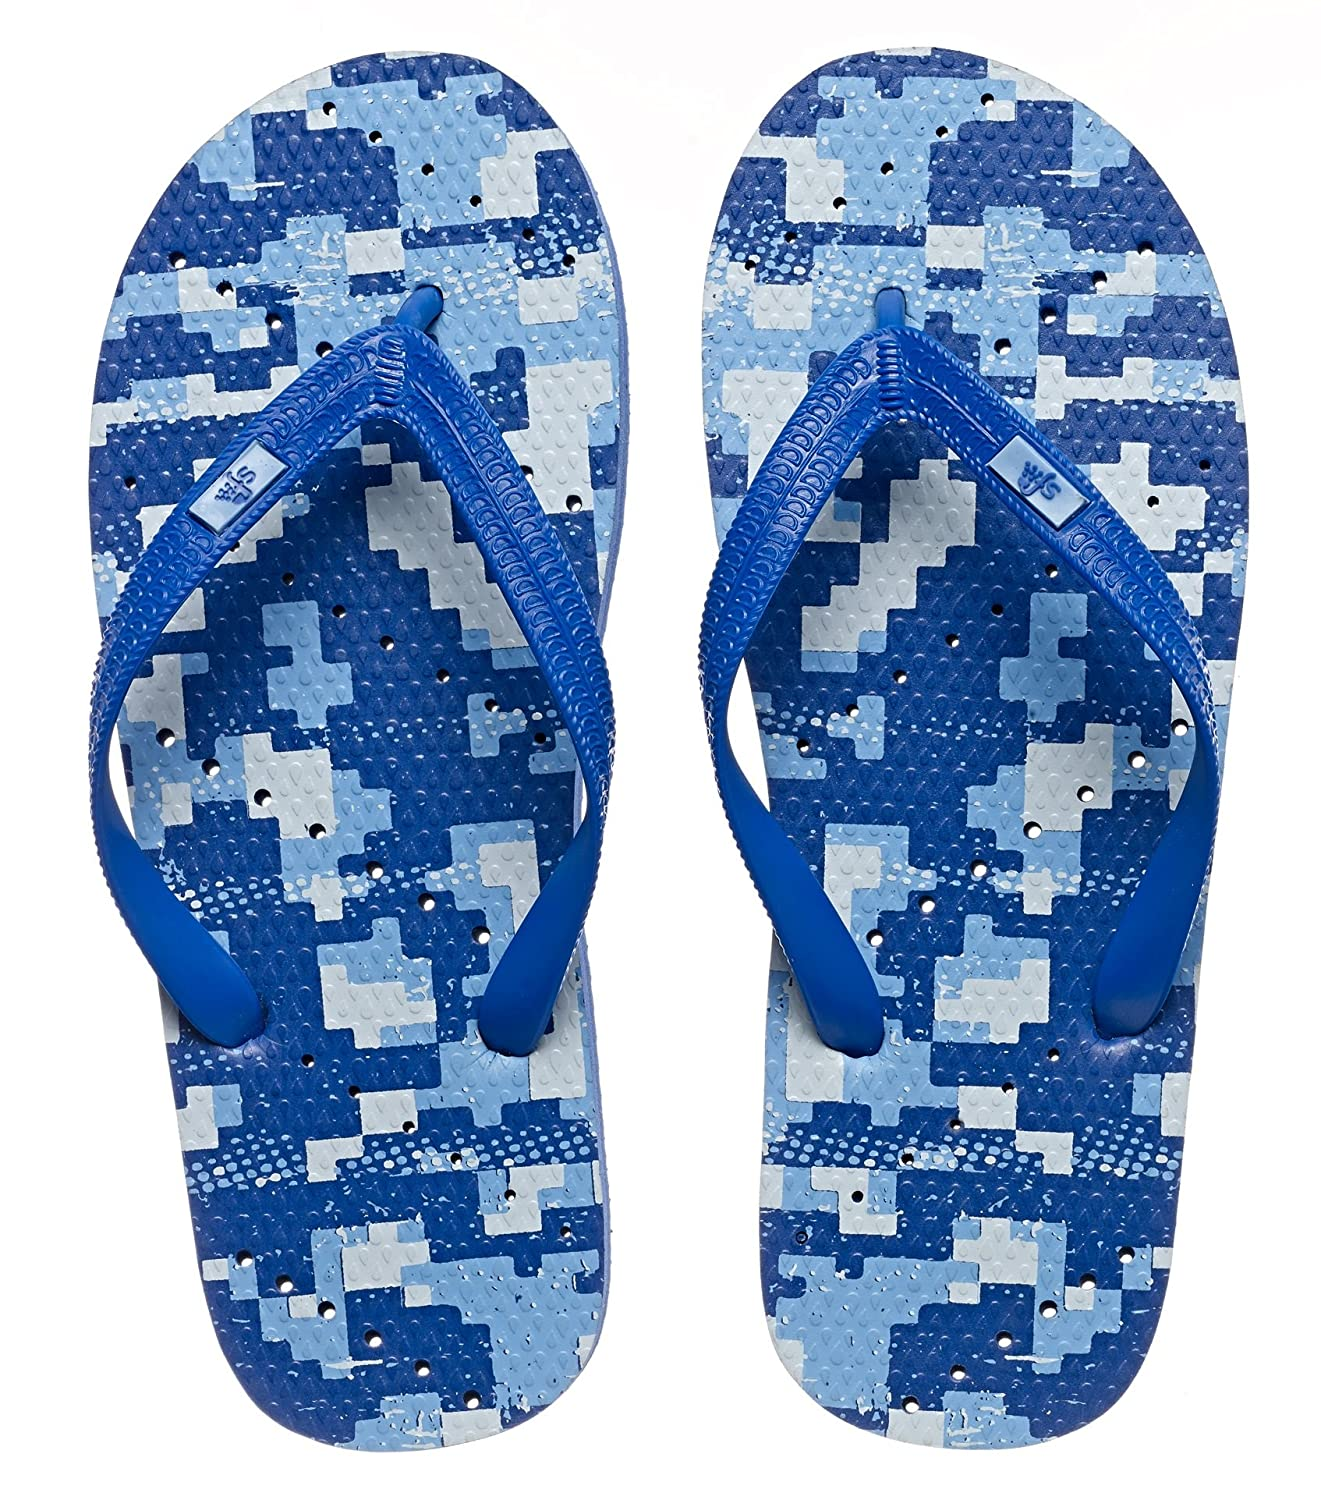 df1c6b5f82a9 Amazon.com  Showaflops Boys  Antimicrobial Shower   Water Sandals for Pool